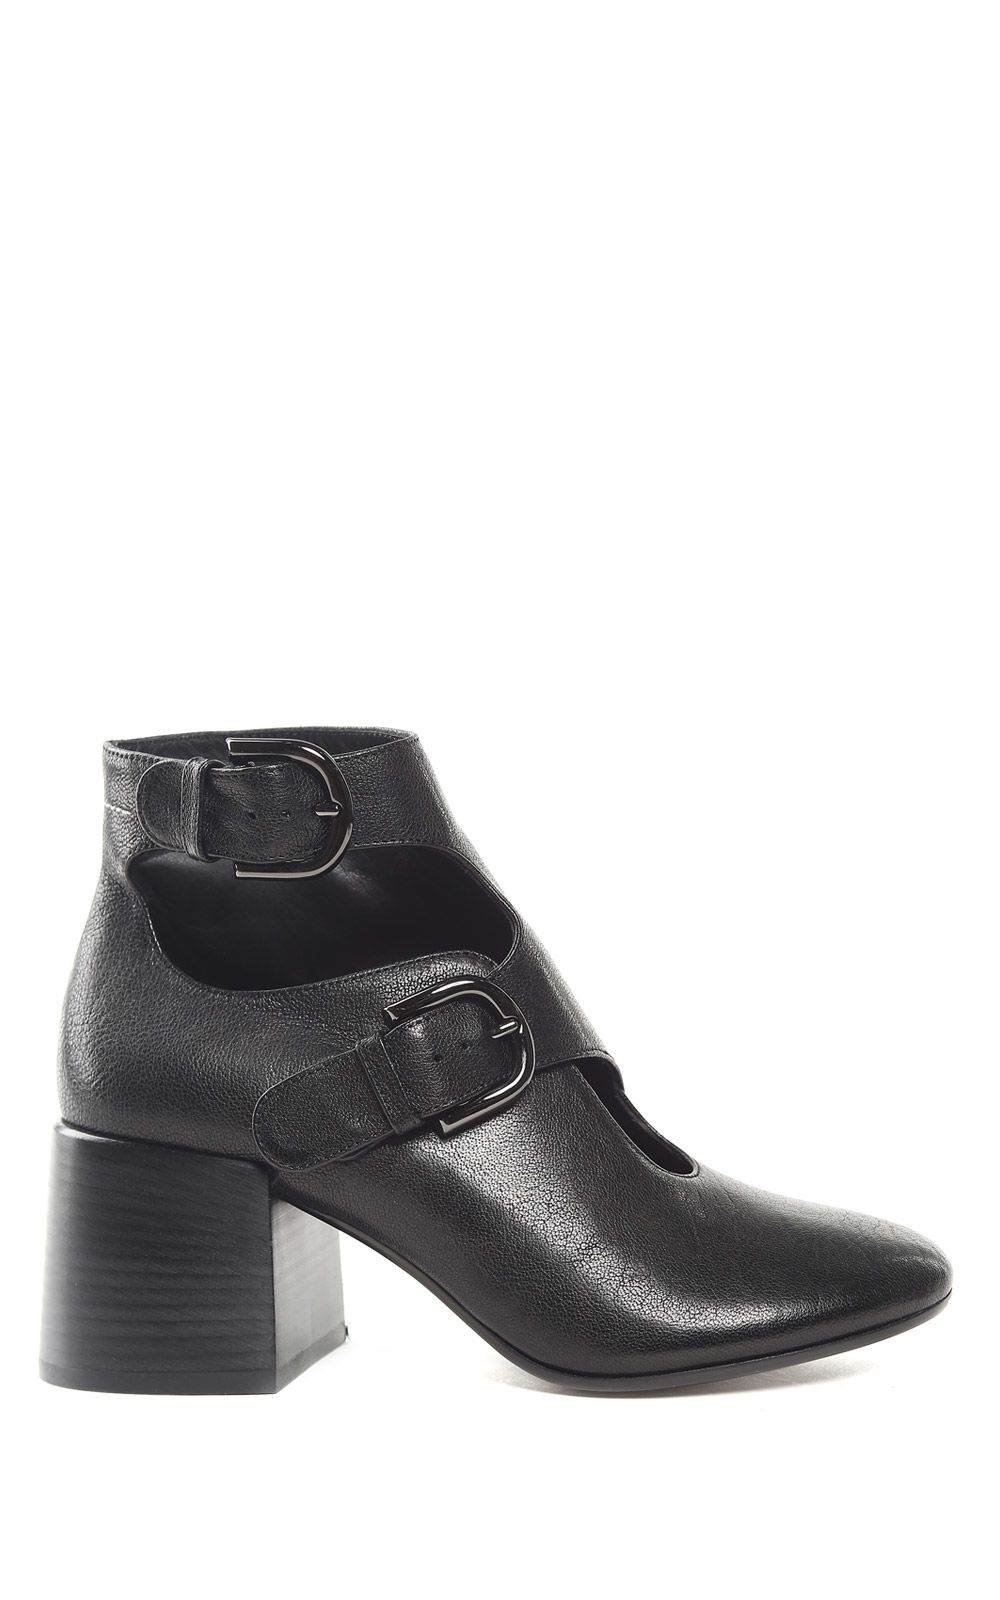 MM6 Maison Margiela Buckled Leather Ankle Boots